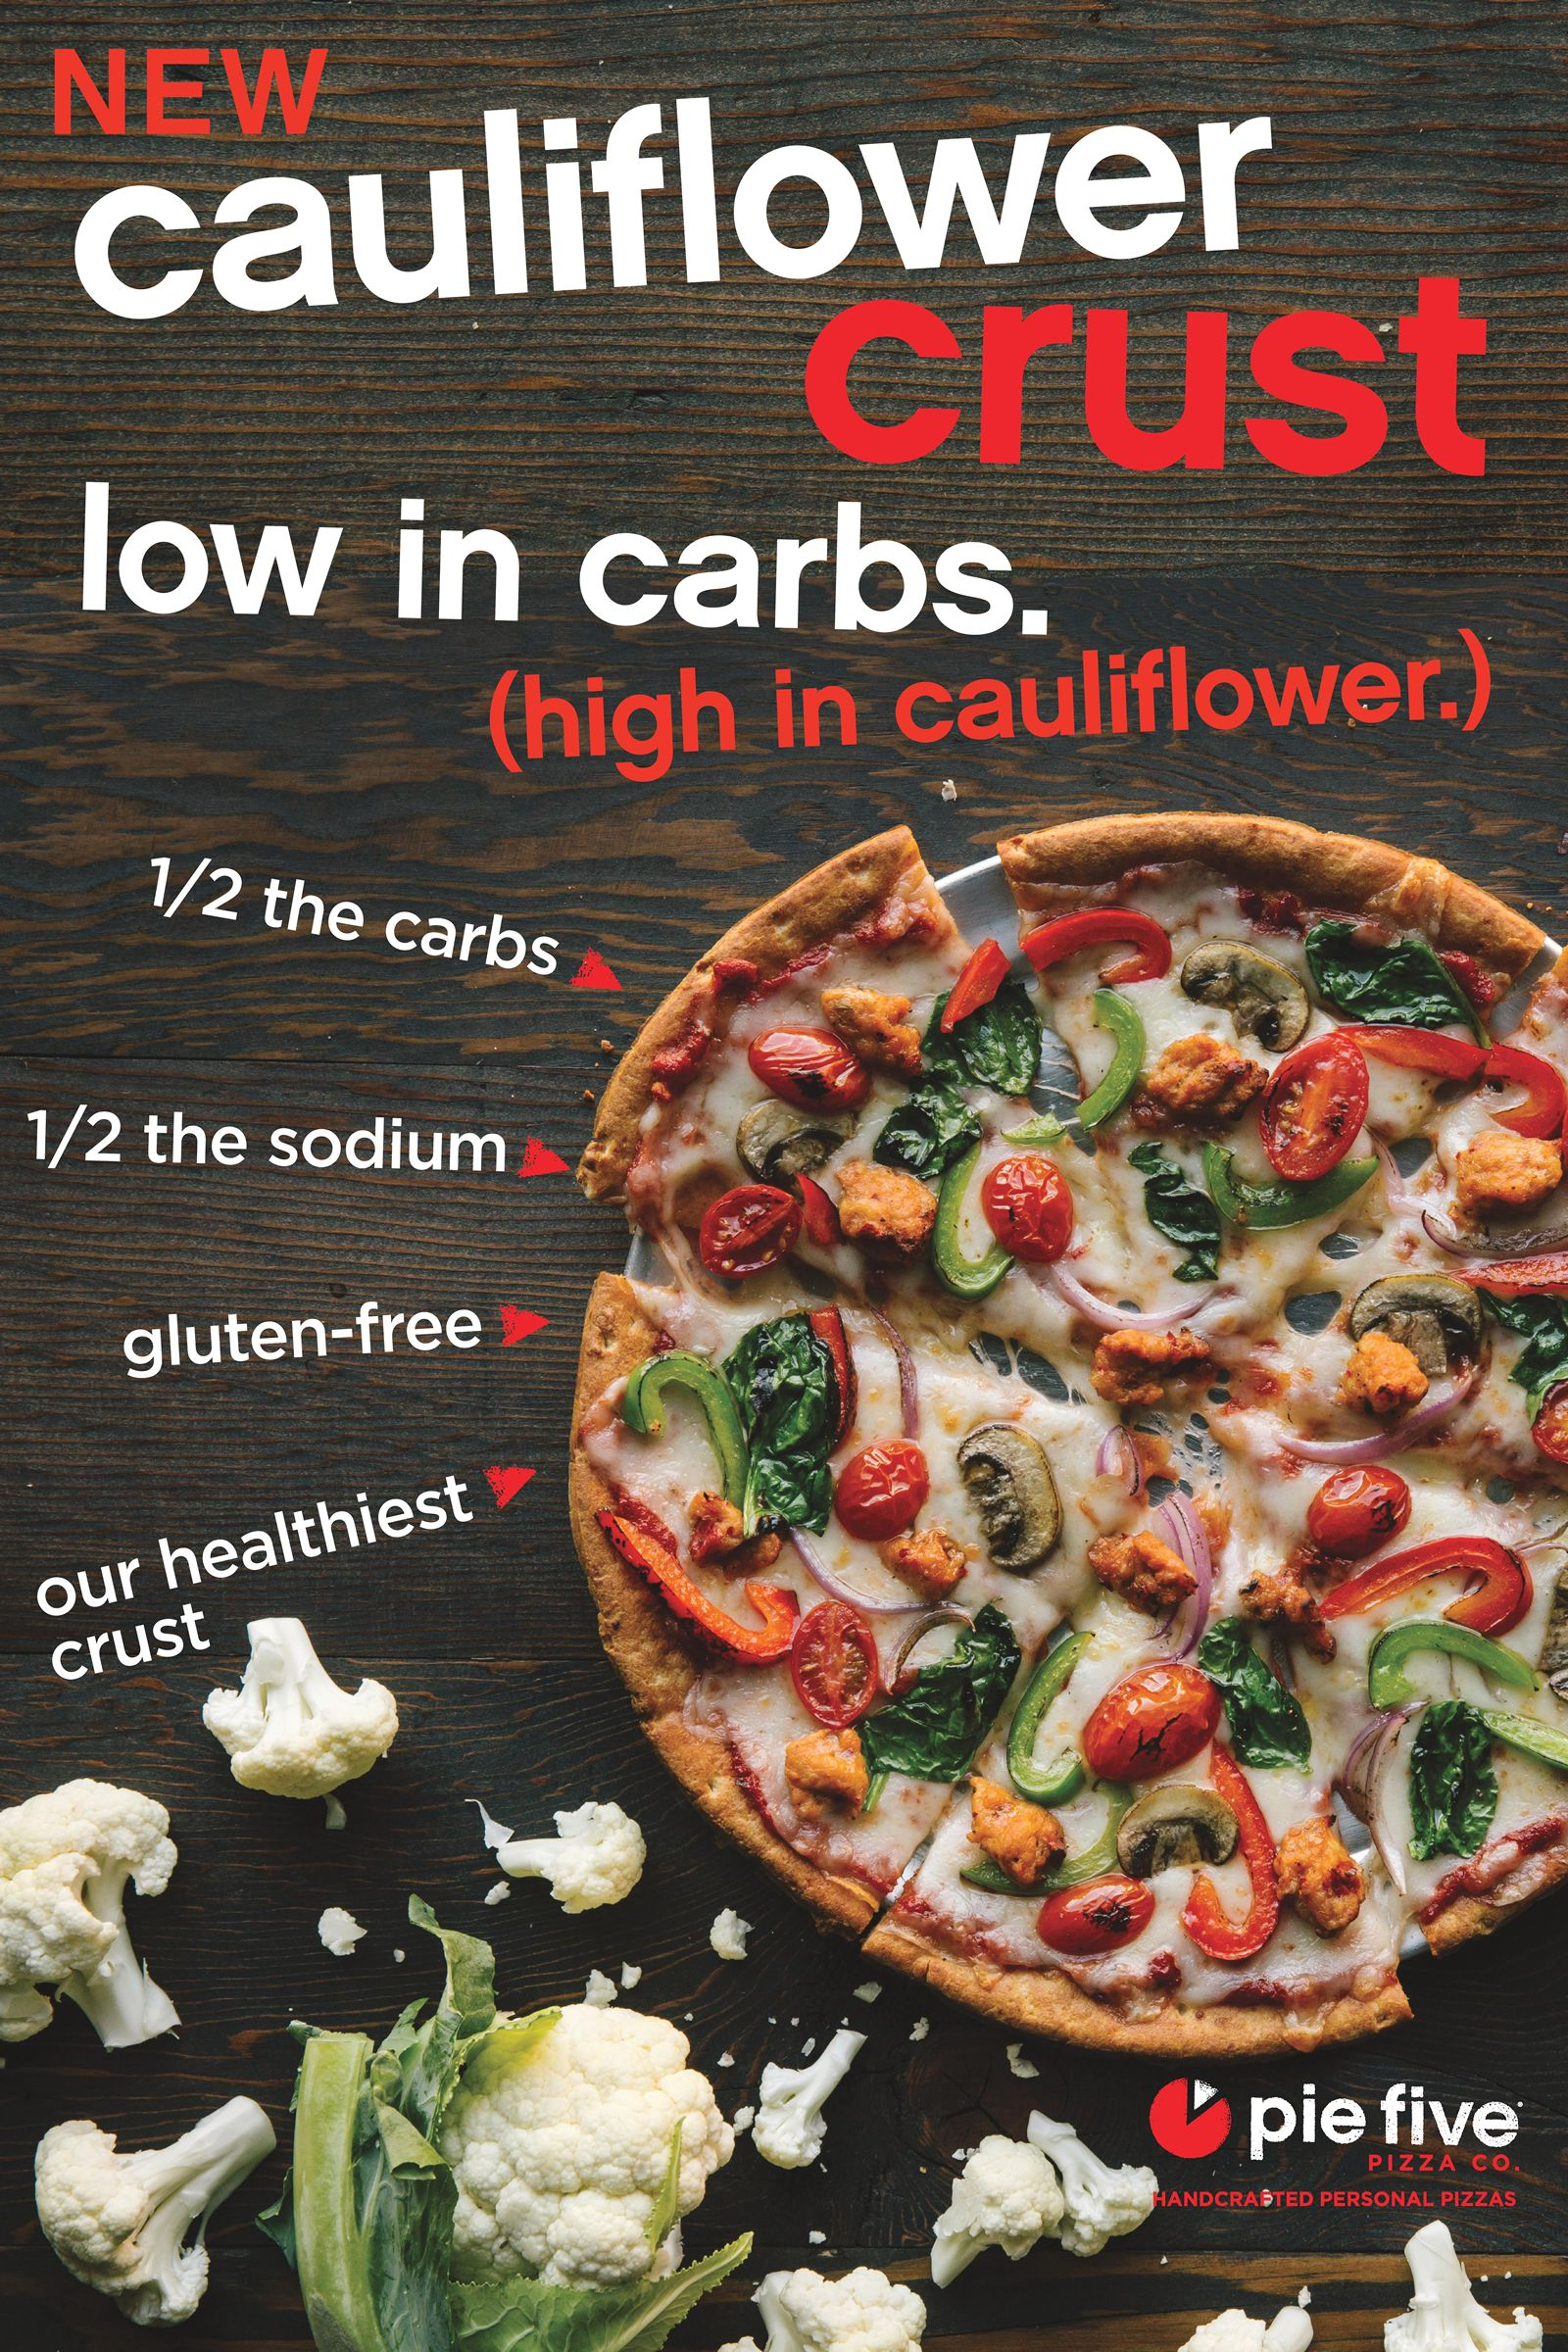 Pie Five Launches First Fast Casual Cauliflower Crust